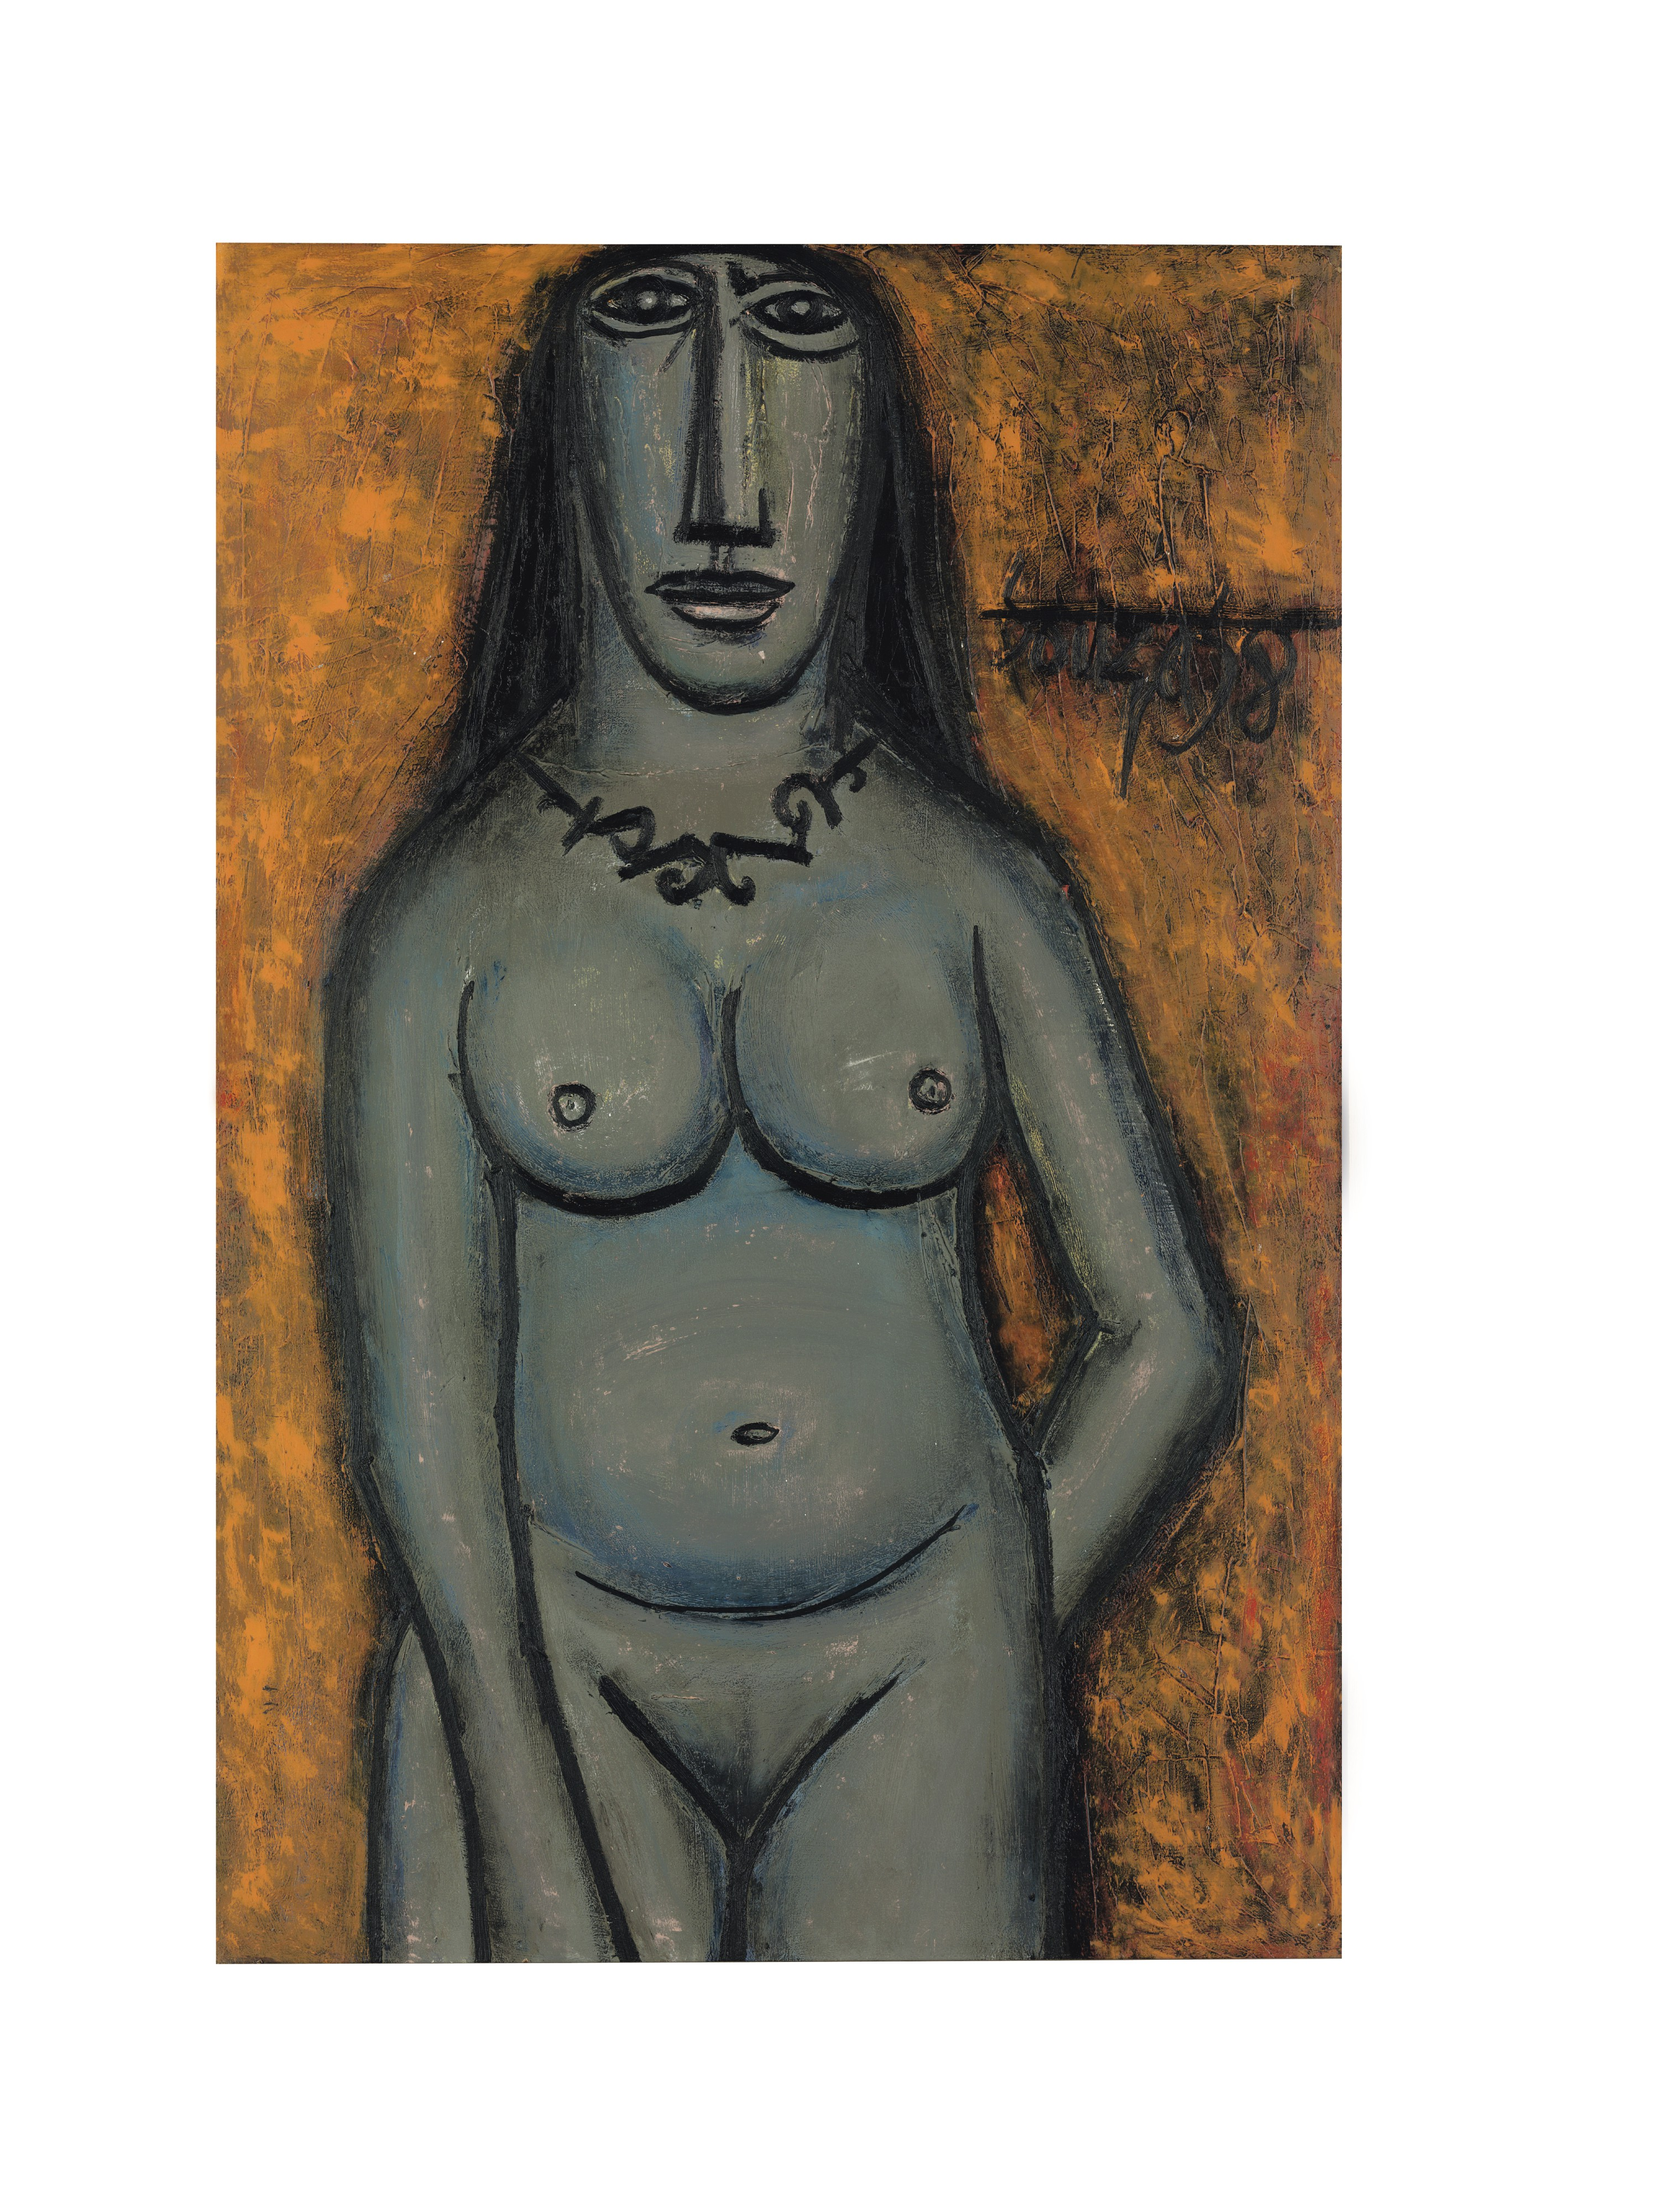 Nude, F N Souza.   This 'Nude' was painted by Francis Newton Souza (1924-2002) in 1958, at a time when Souza had gained critical recognition, patronage and gallery representation in London. The subject in this painting illustrates the artist's preference for robust figures in bold frontal poses, inspired by the temple sculptures of Khajuraho and Mathura. The voluptuous curves are reminiscent of Picasso's geometry of forms. Souza's mastery is evident in the delicate layering of colour and the subtle play of light and shade used to delineate her body. (Estimate: $150,000-200,000)